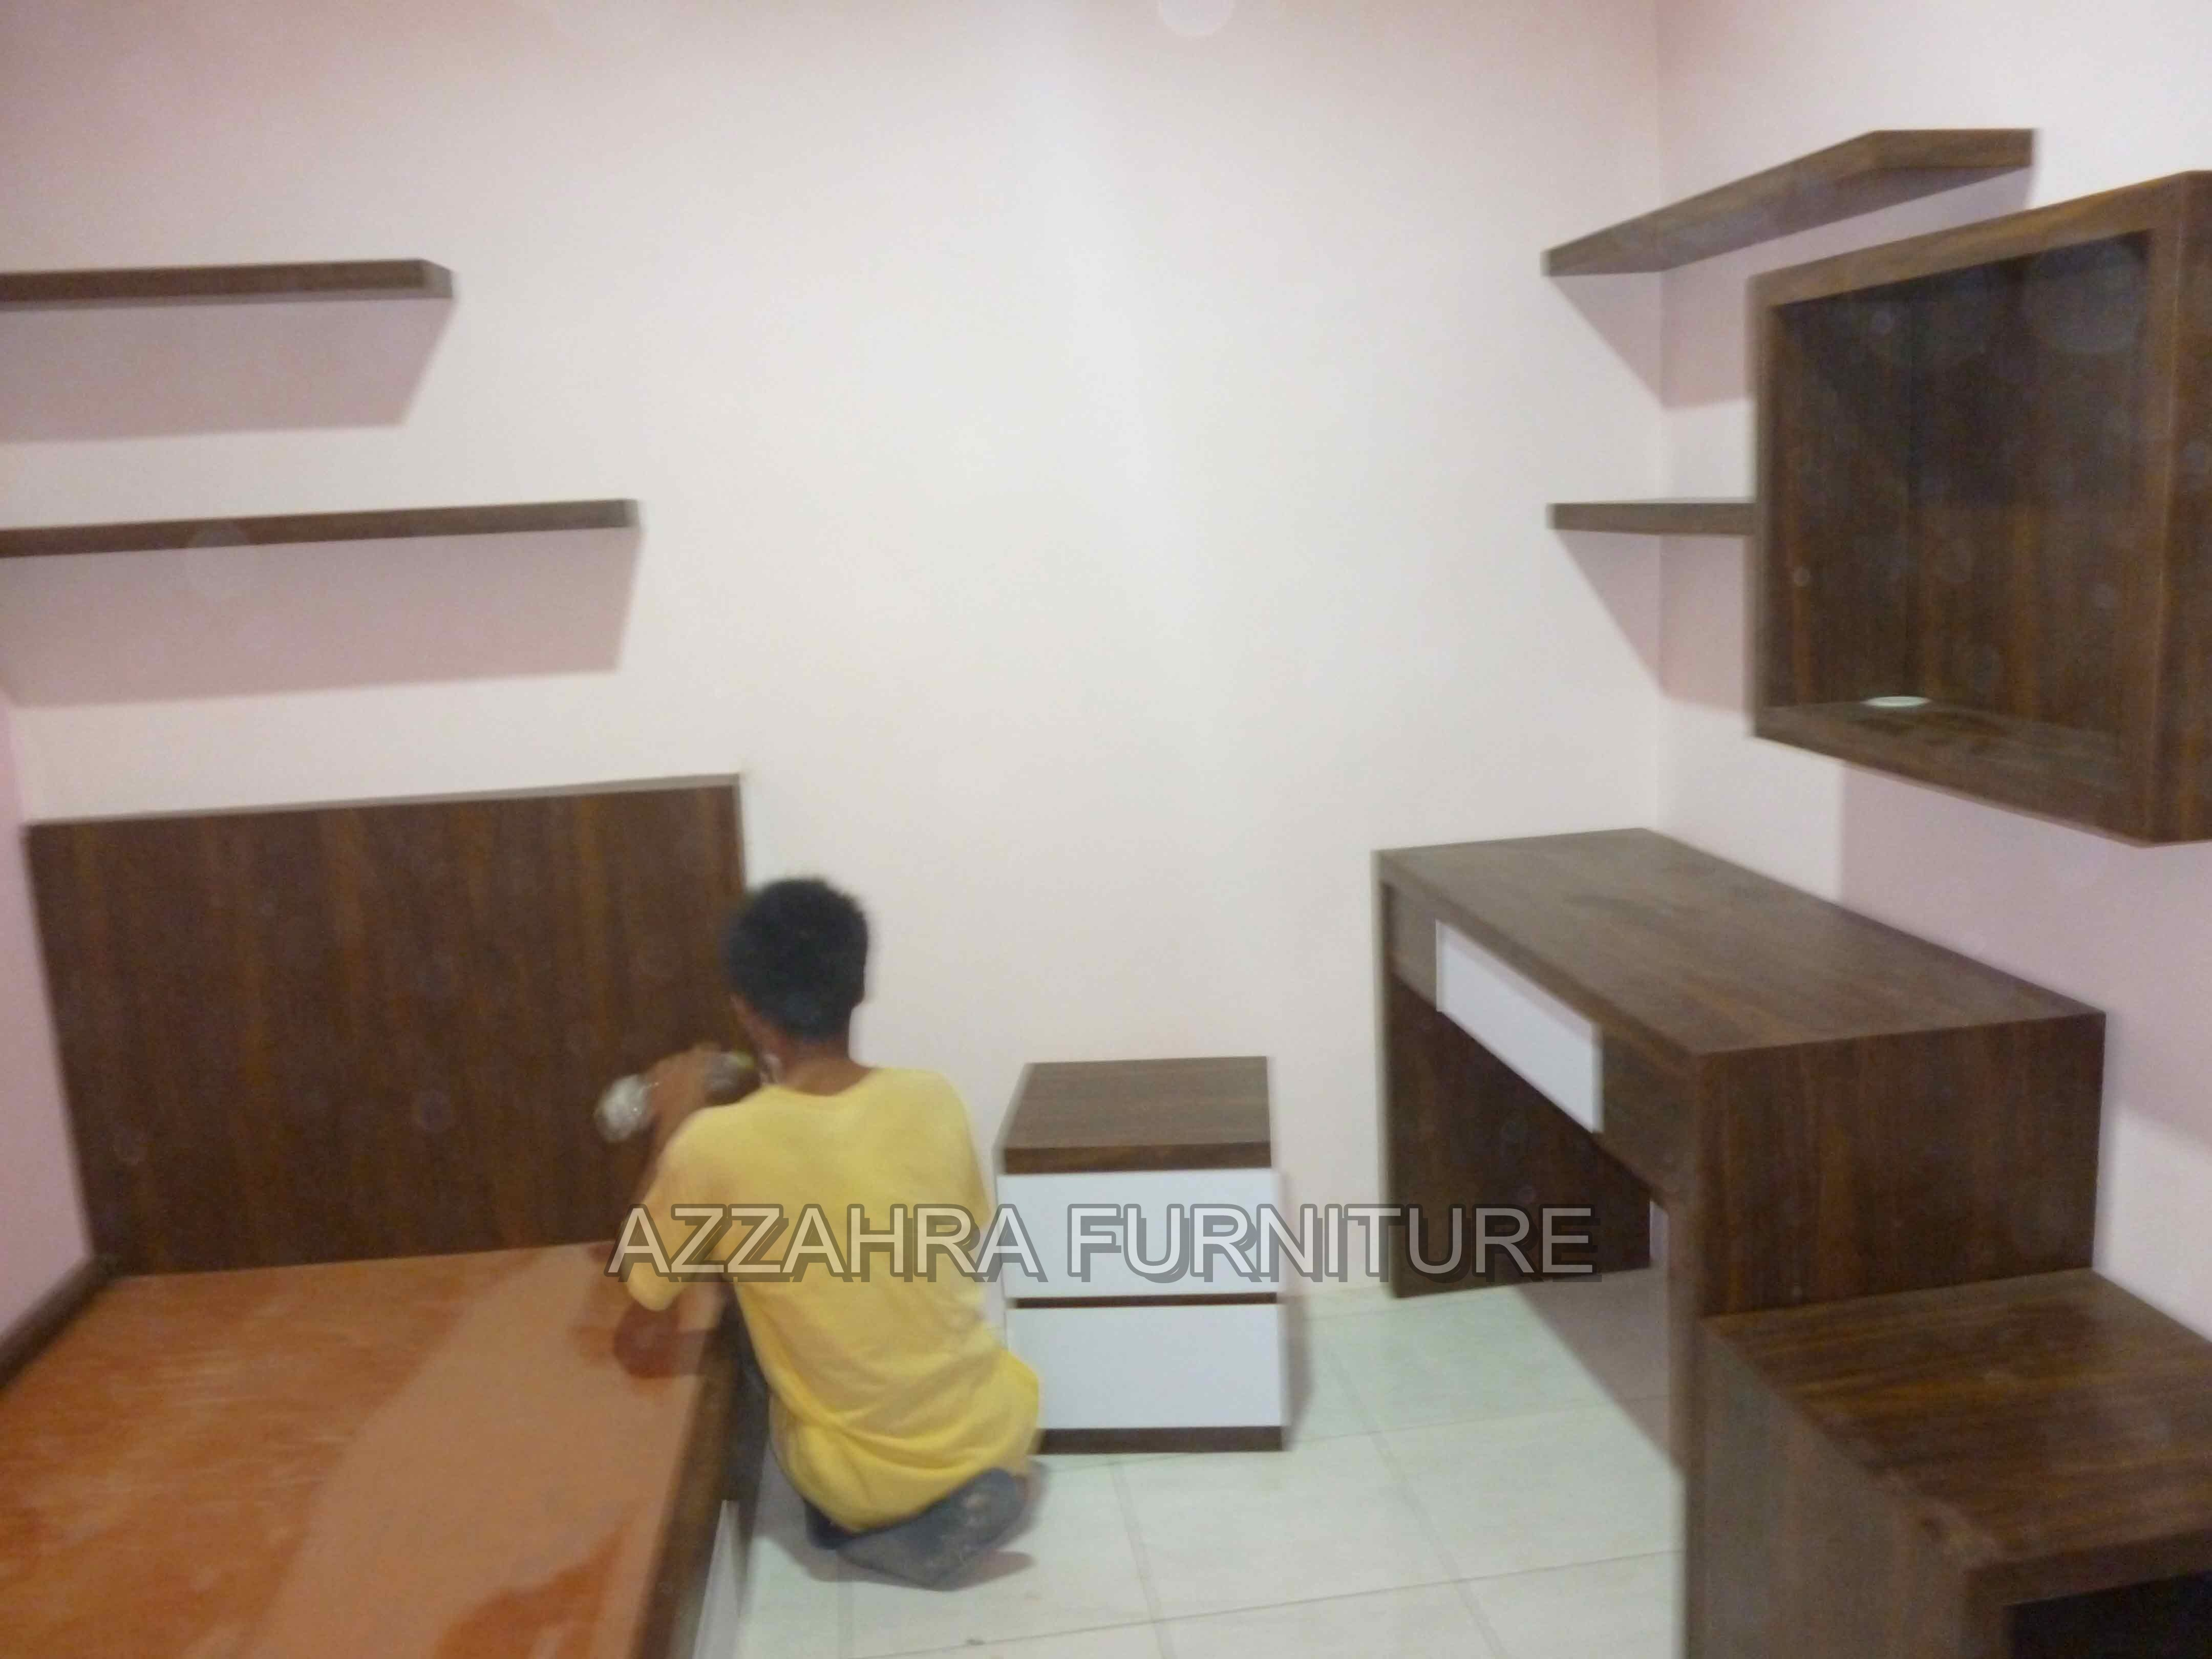 Furniture Kost Minimalis Azzahra Furniture # Muebles Rapi Estant